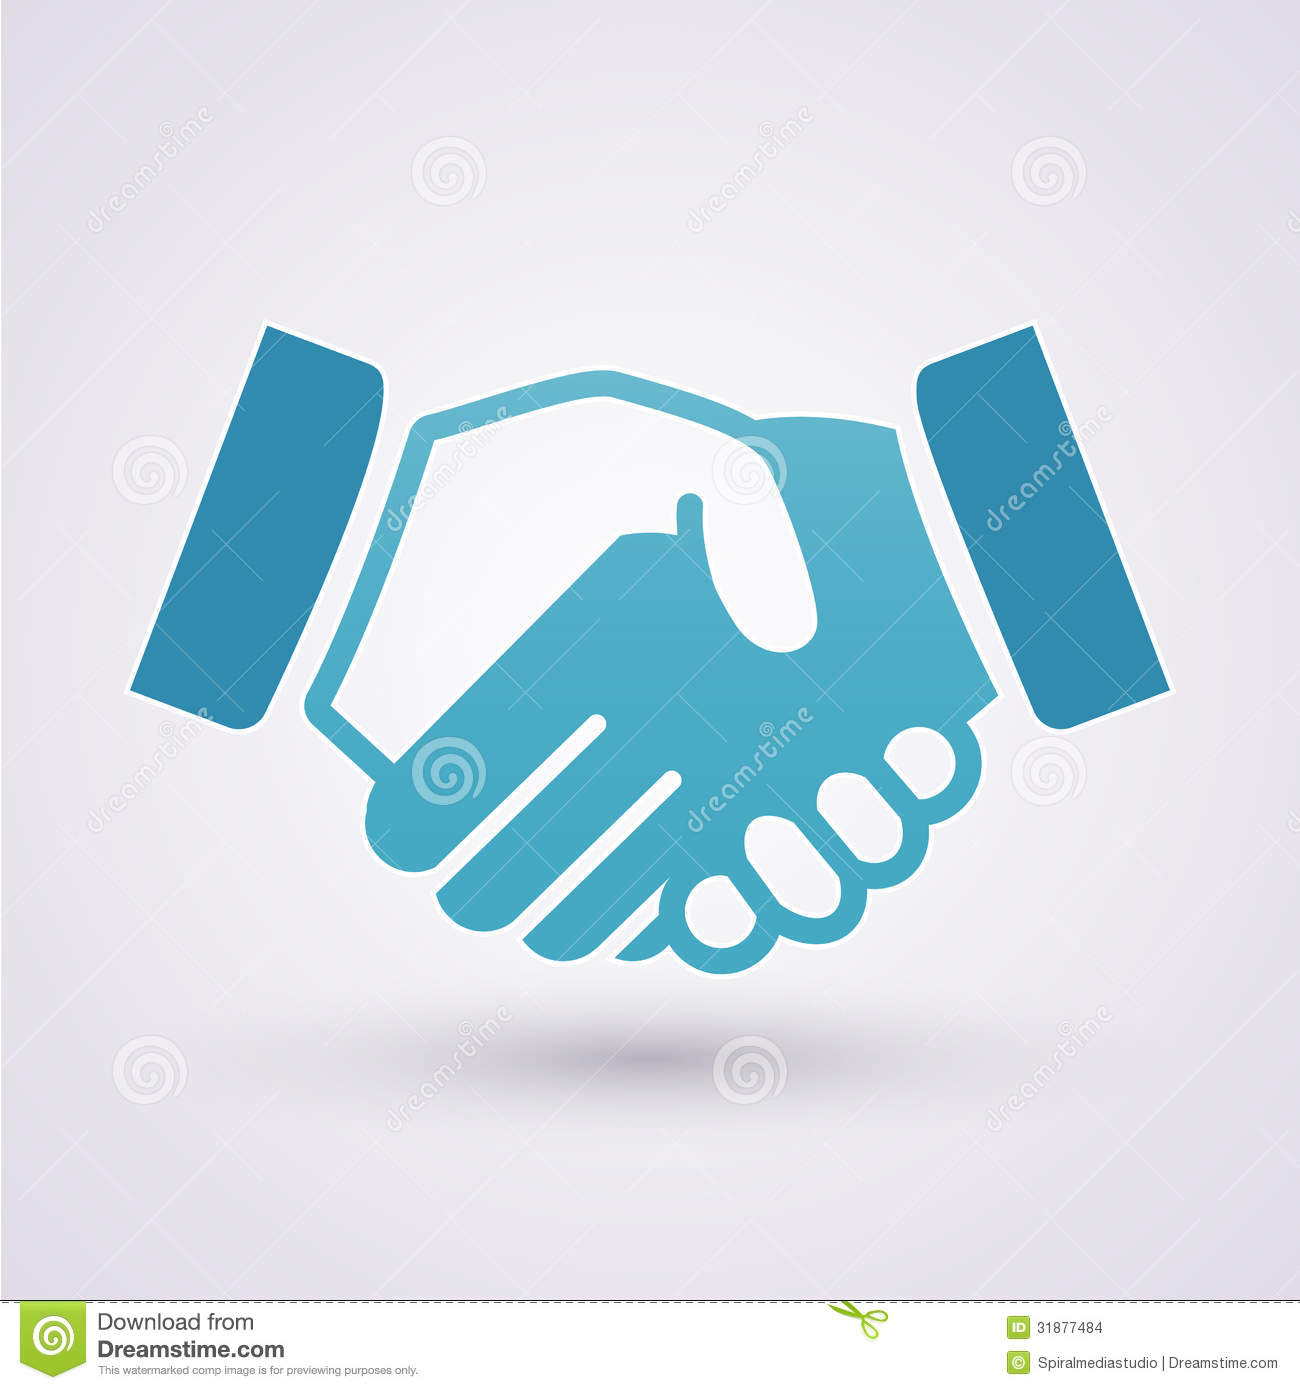 Handshake icon. Business concept background.